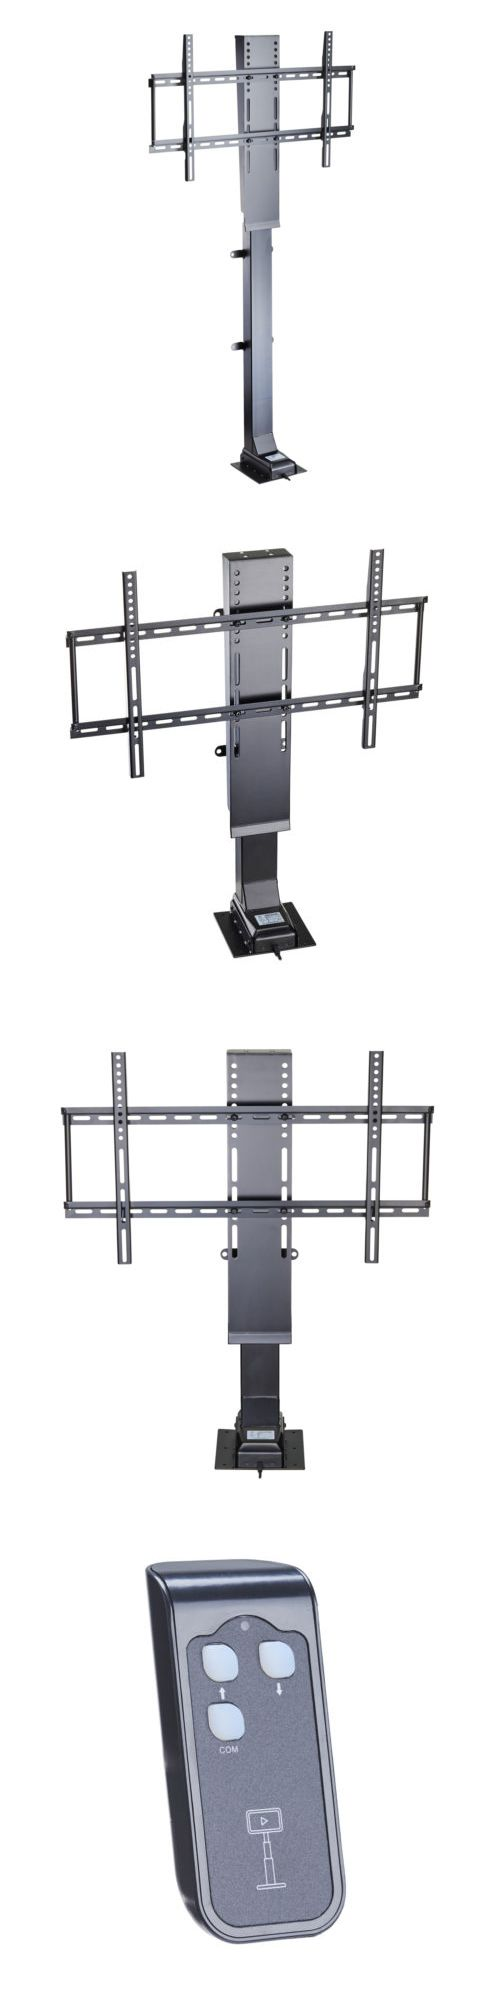 TV Mounts and Brackets: Motorized 32-50'' Flat Tv Lifting Stand Bracket W. Remote Control 1000Mm Stroke -> BUY IT NOW ONLY: $308.0 on eBay!